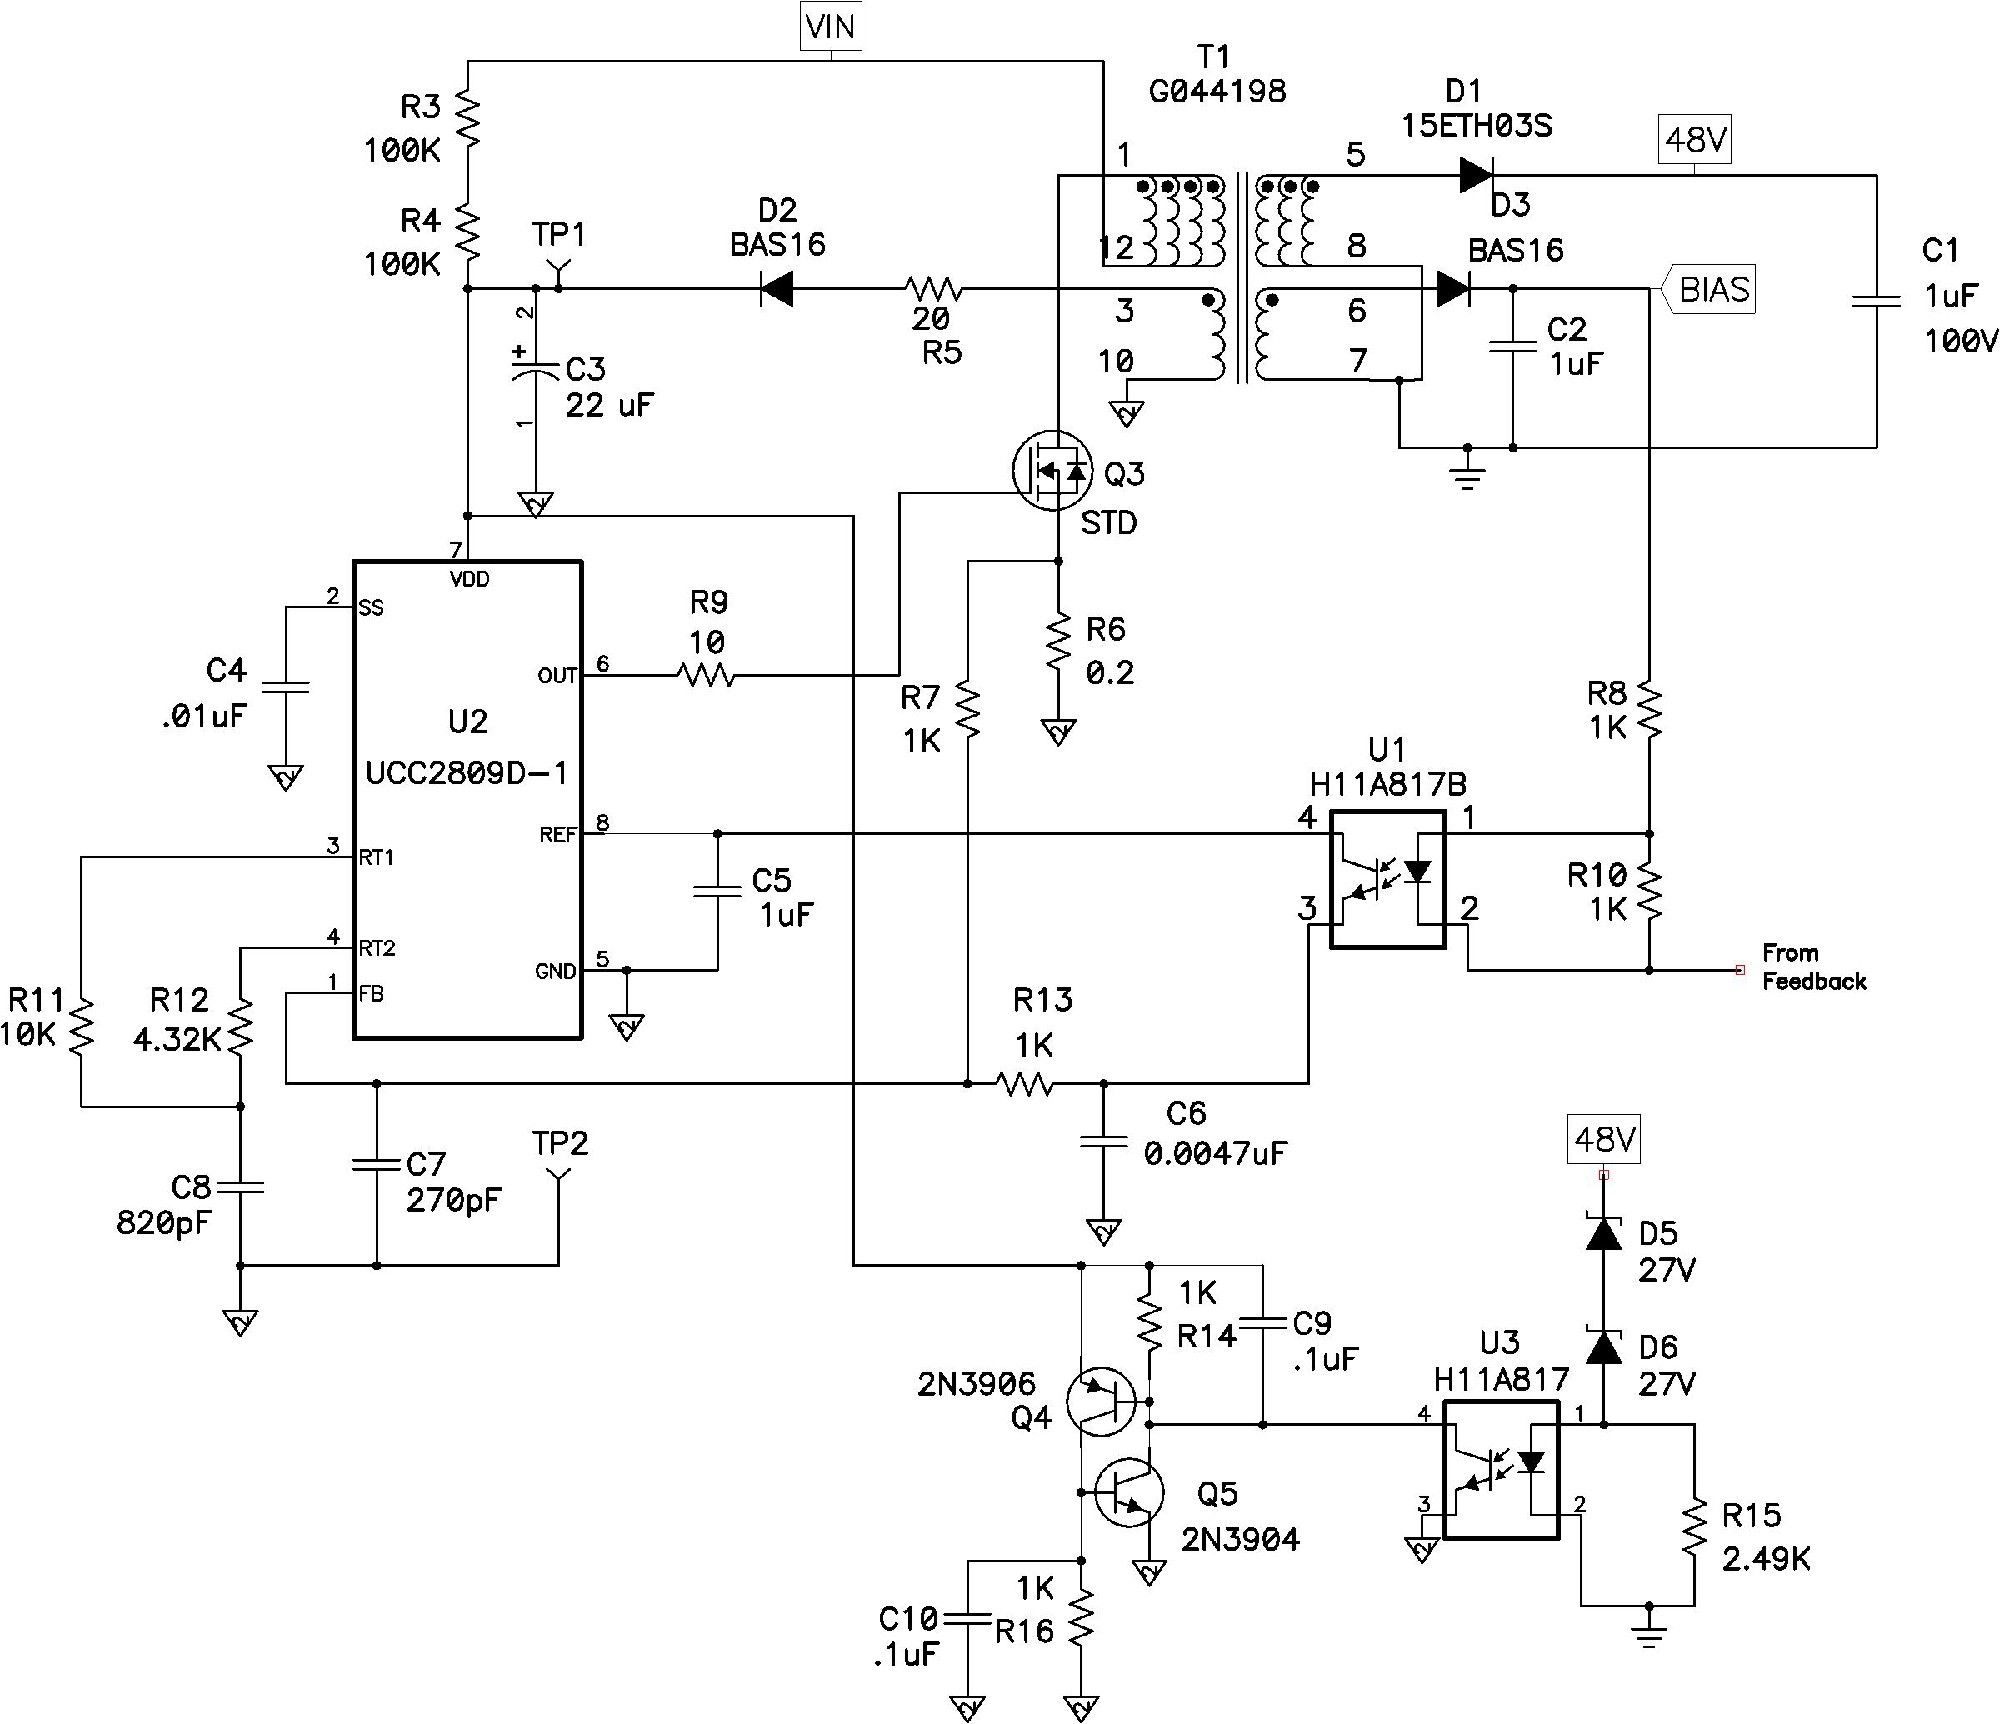 Tattoo Power Supply Wiring Diagram Luxury Multi Power source Using Different sources for No Break Block